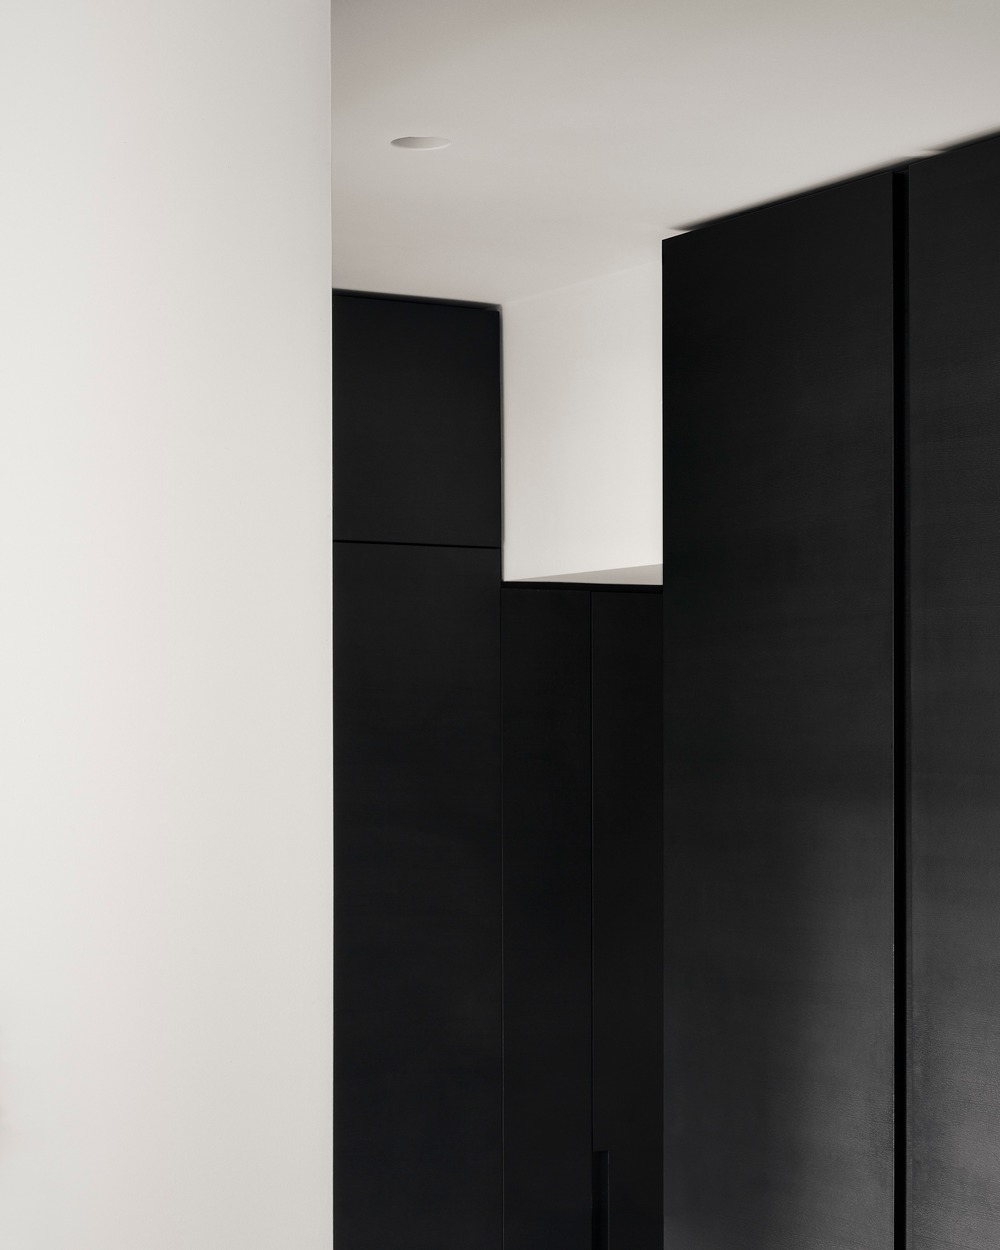 This is an area of the house depicting the artistic design of the house's black and white theme.